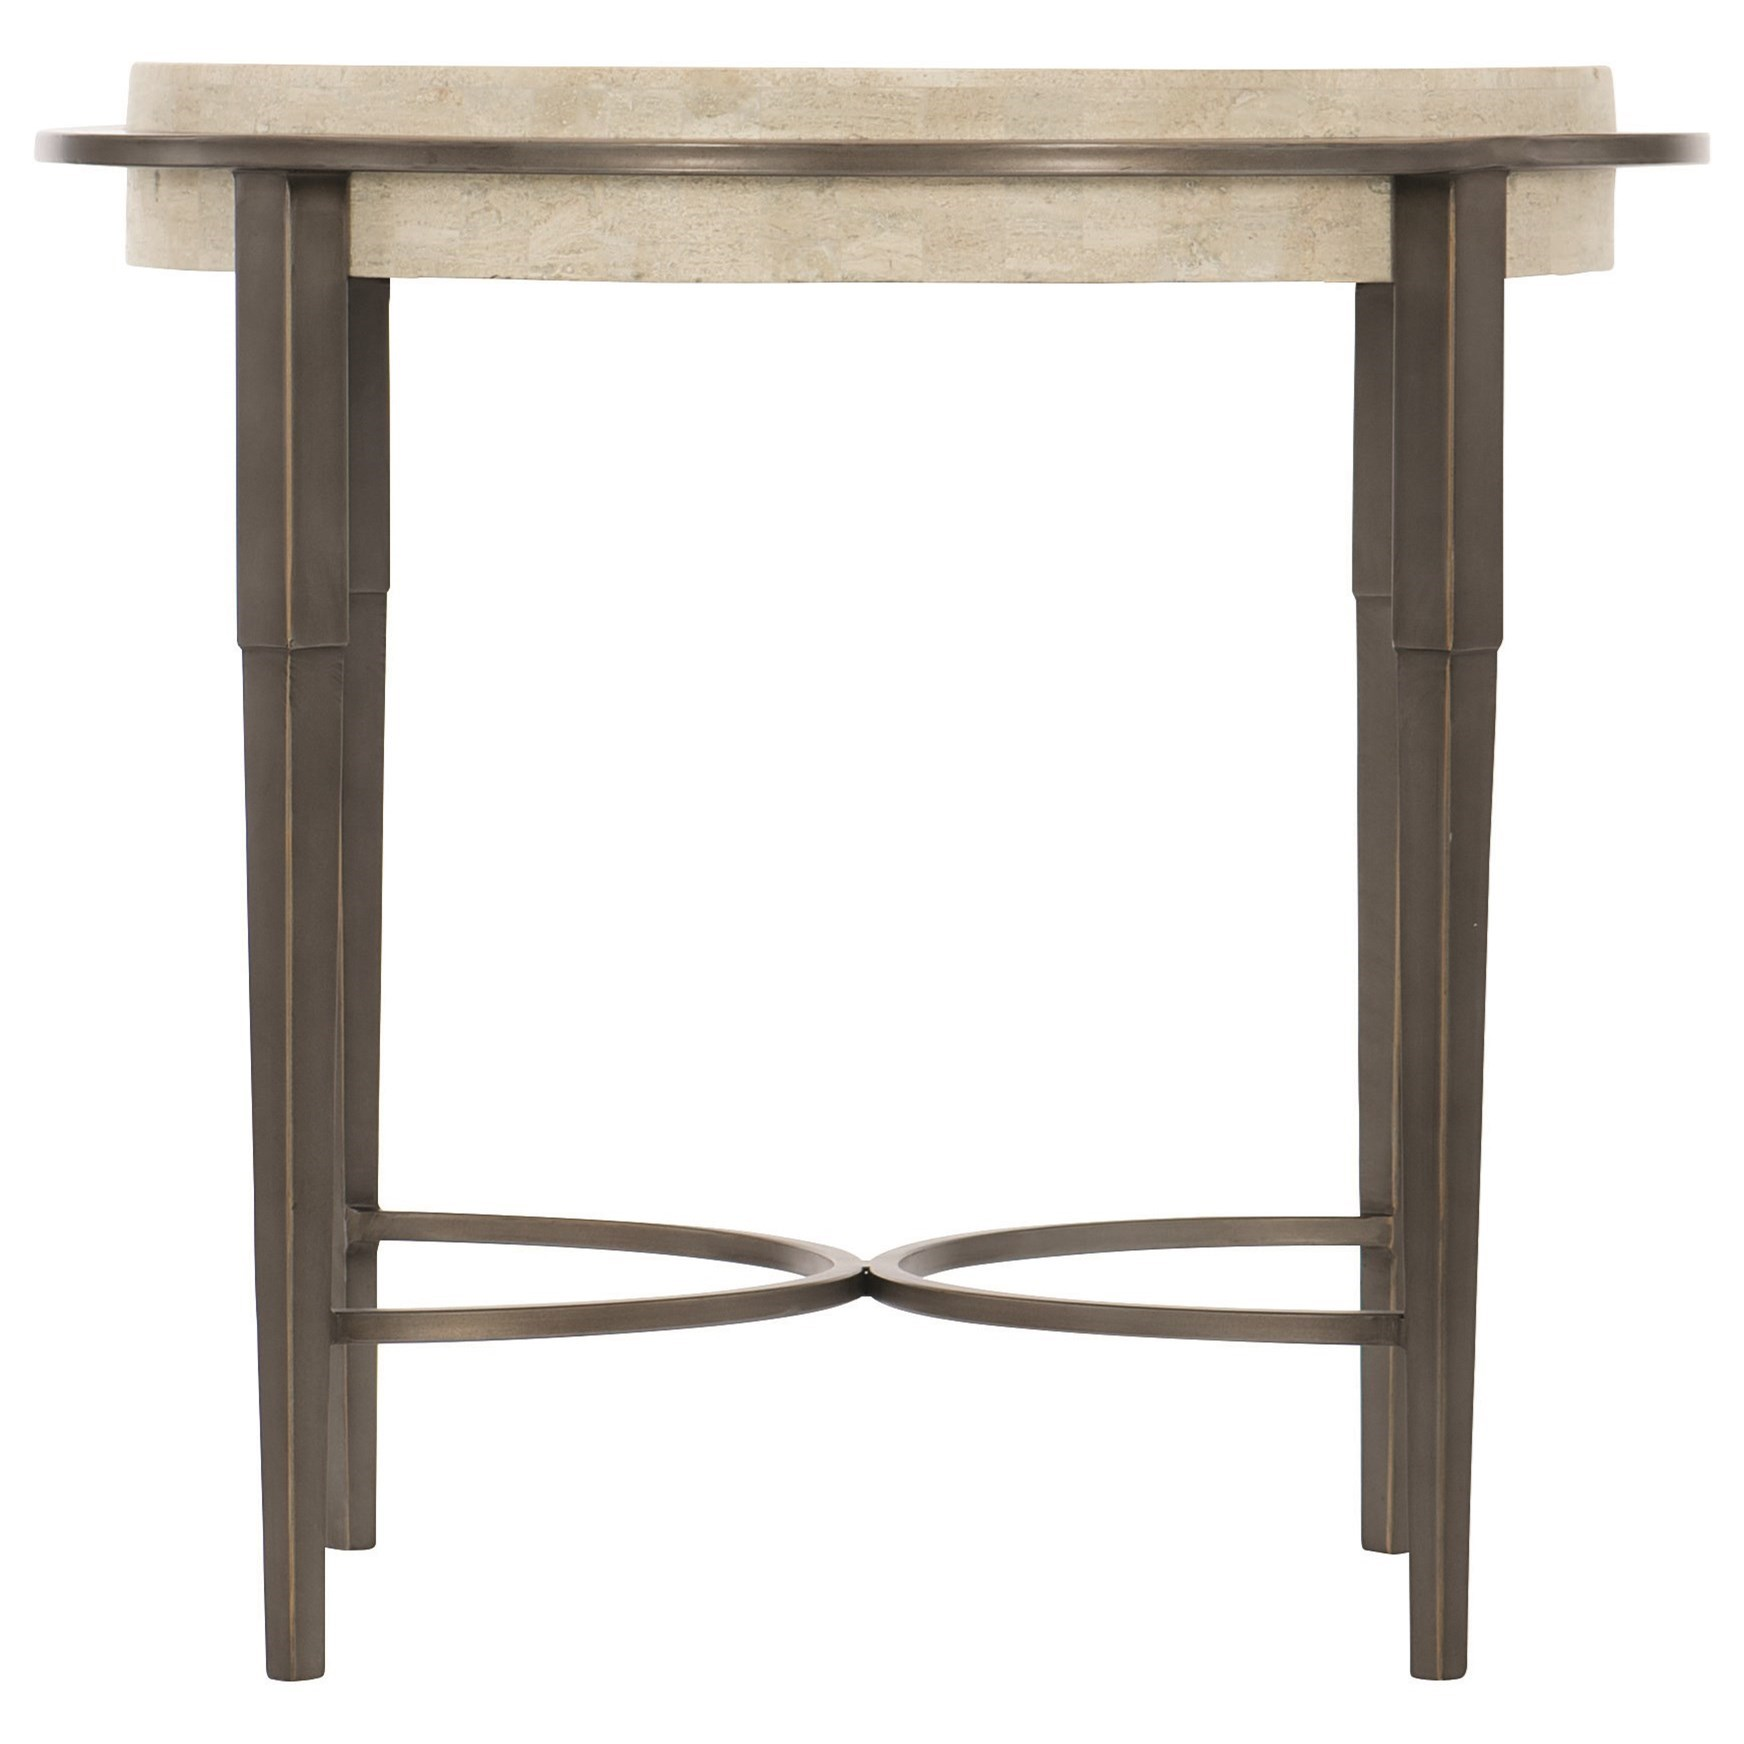 Barclay Metal Round Chairside Table by Bernhardt at Darvin Furniture